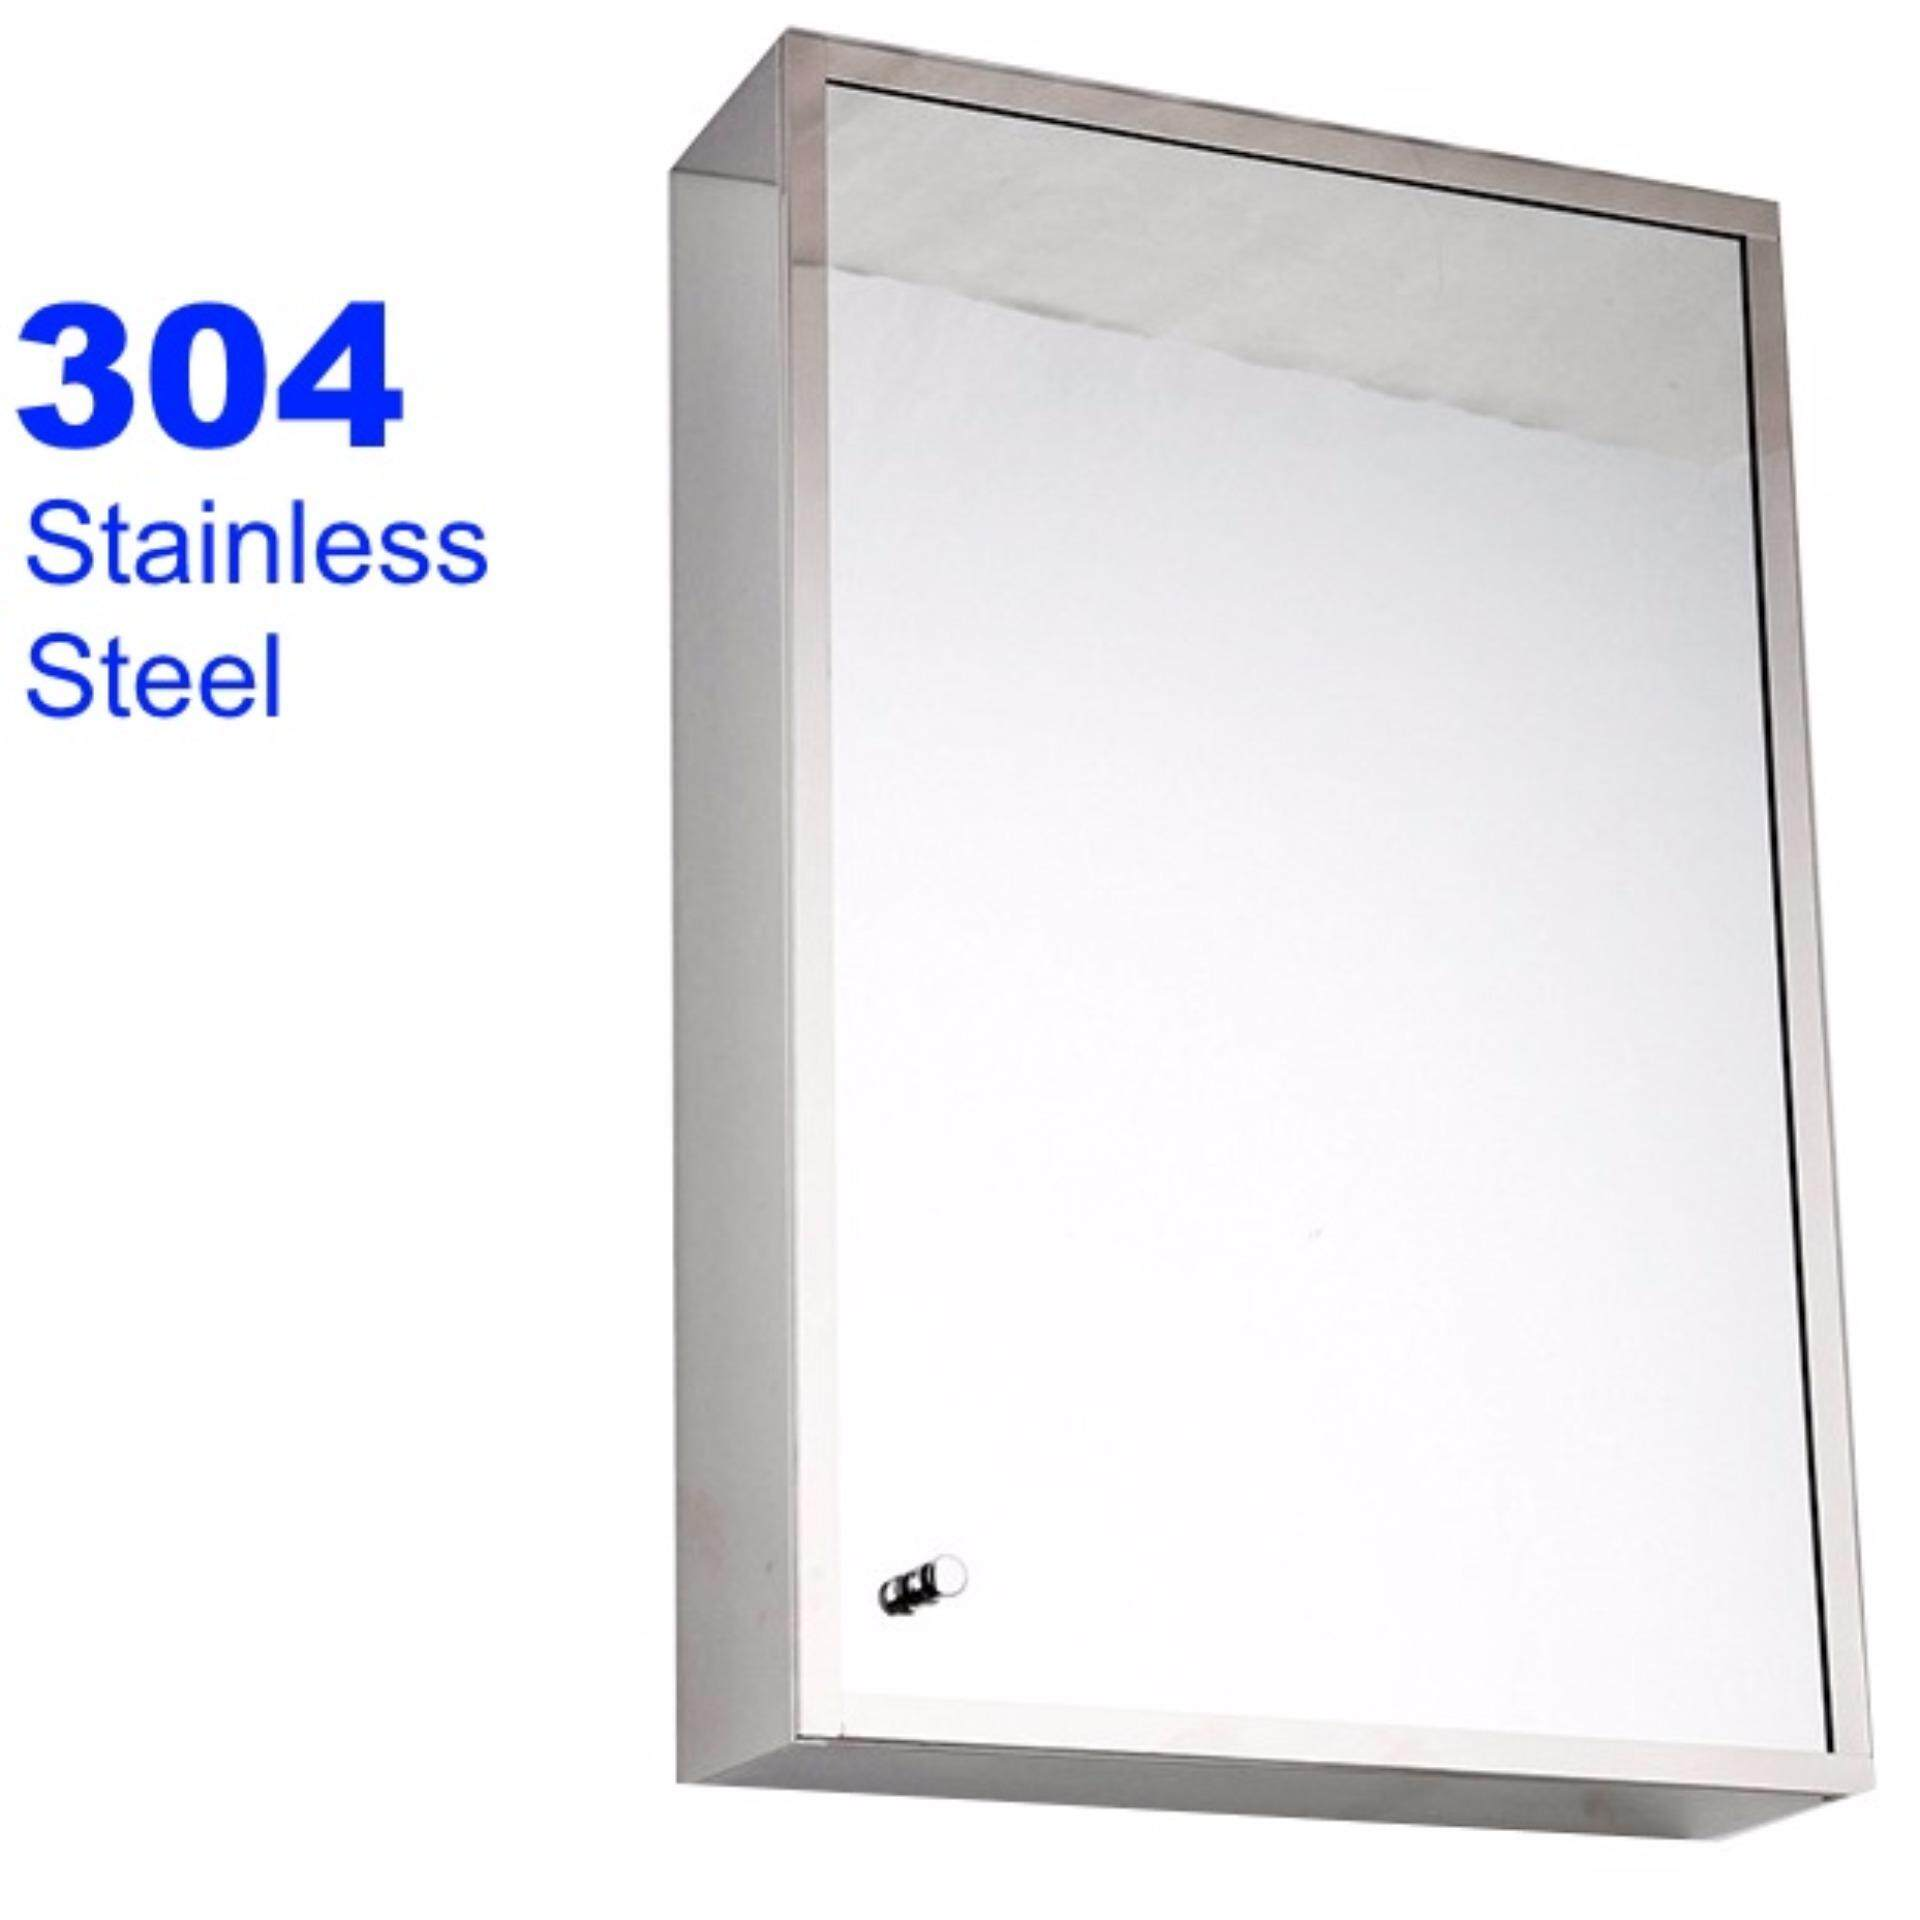 BDS Stainless Steel Mirror Bathroom Cabinet